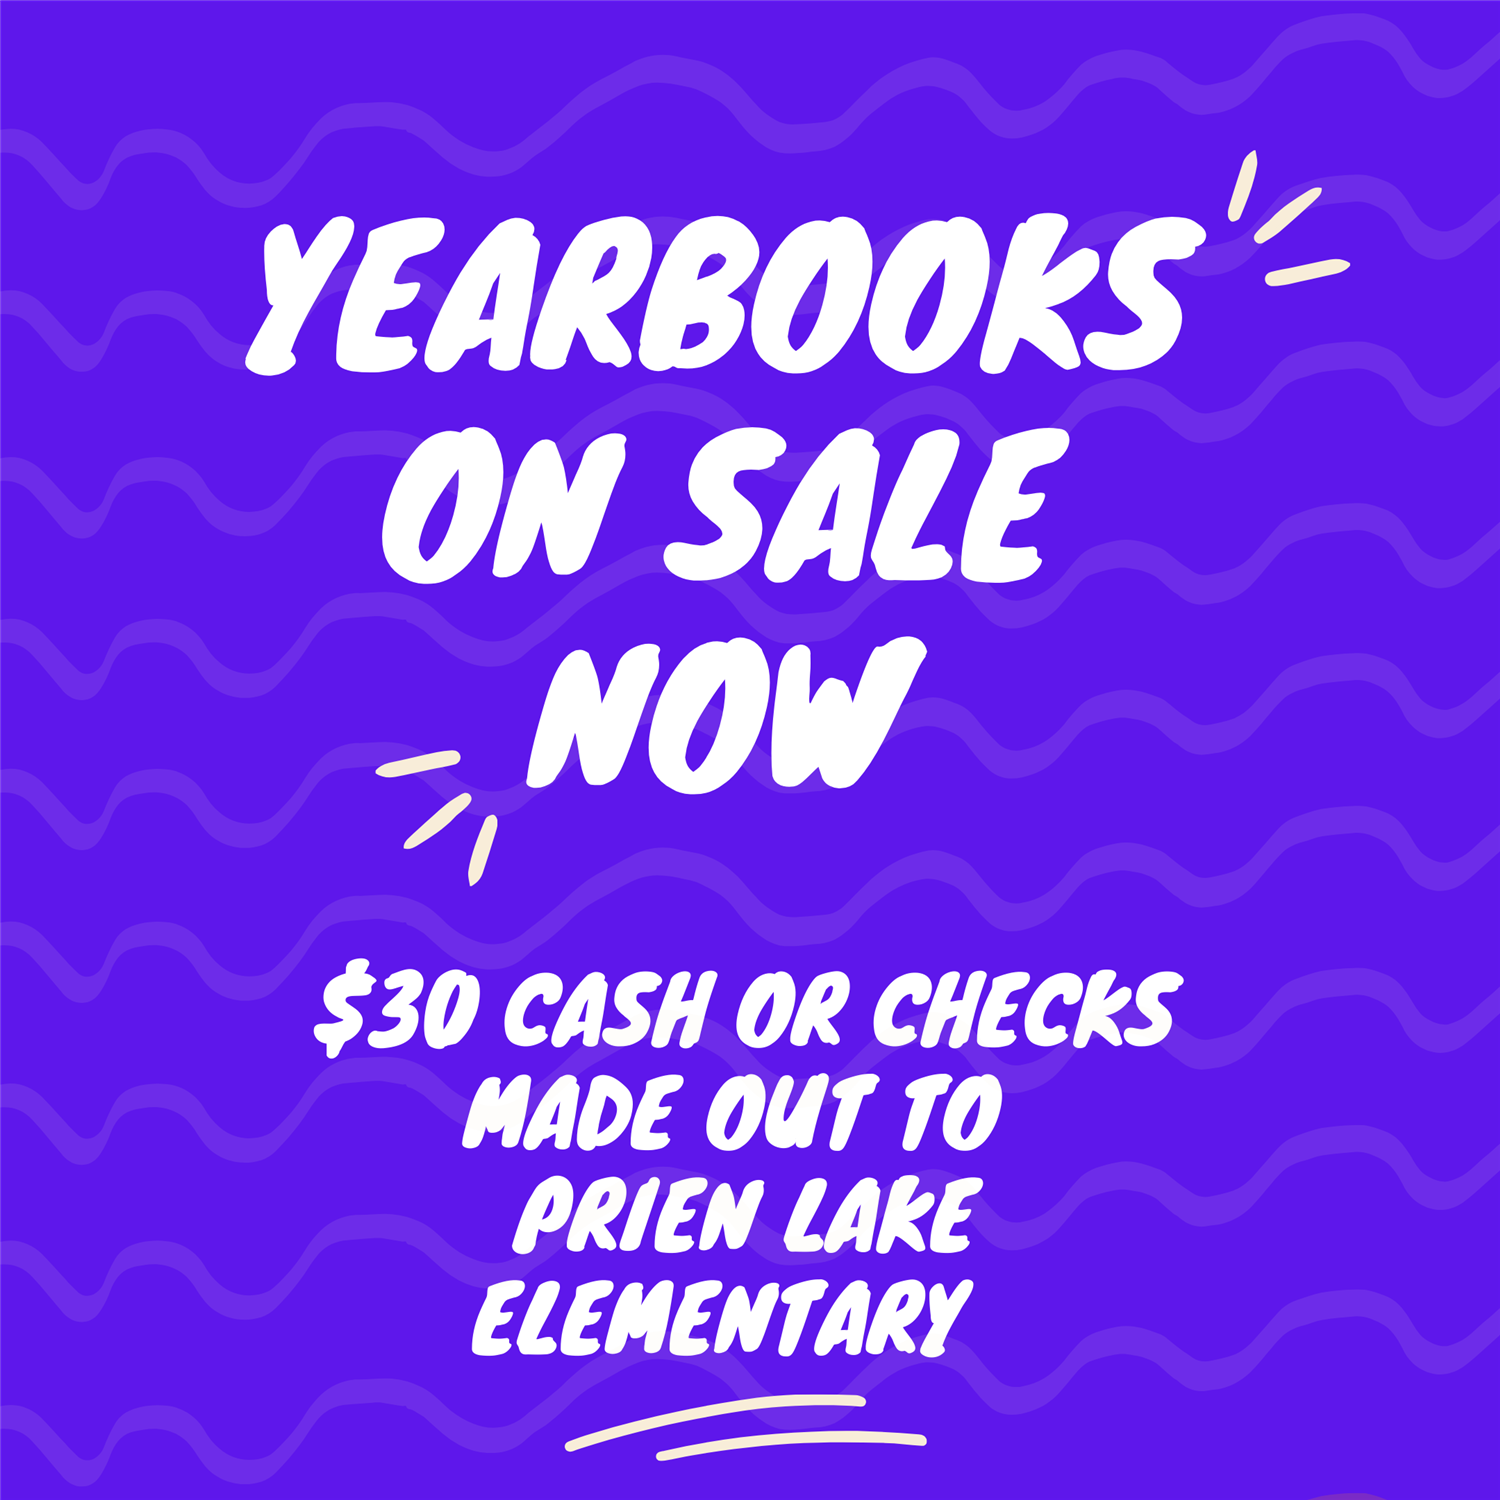 Yearbooks on sale now! $30 cash or checks made out to Prien Lake Elementary.  Last day to order is February 1st! .